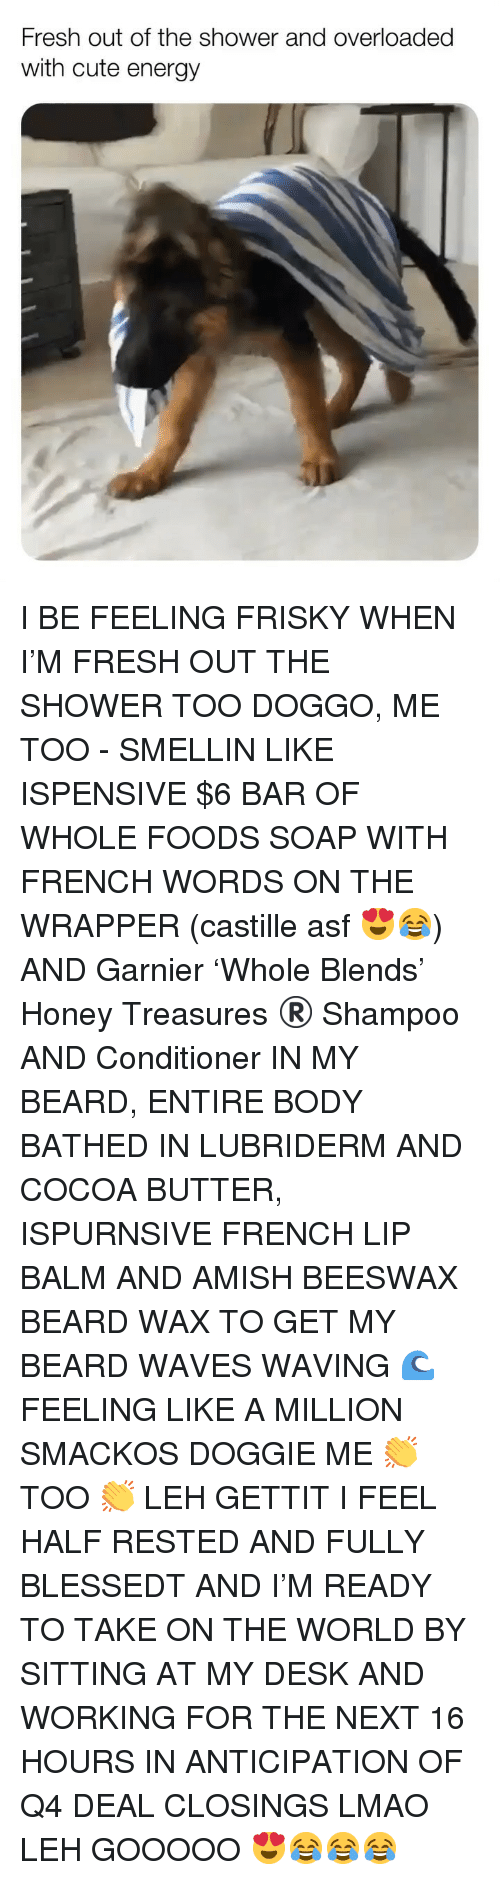 Beard, Cute, and Energy: Fresh out of the shower and overloaded  with cute energy I BE FEELING FRISKY WHEN I'M FRESH OUT THE SHOWER TOO DOGGO, ME TOO - SMELLIN LIKE ISPENSIVE $6 BAR OF WHOLE FOODS SOAP WITH FRENCH WORDS ON THE WRAPPER (castille asf 😍😂) AND Garnier 'Whole Blends' Honey Treasures ®️ Shampoo AND Conditioner IN MY BEARD, ENTIRE BODY BATHED IN LUBRIDERM AND COCOA BUTTER, ISPURNSIVE FRENCH LIP BALM AND AMISH BEESWAX BEARD WAX TO GET MY BEARD WAVES WAVING 🌊 FEELING LIKE A MILLION SMACKOS DOGGIE ME 👏 TOO 👏 LEH GETTIT I FEEL HALF RESTED AND FULLY BLESSEDT AND I'M READY TO TAKE ON THE WORLD BY SITTING AT MY DESK AND WORKING FOR THE NEXT 16 HOURS IN ANTICIPATION OF Q4 DEAL CLOSINGS LMAO LEH GOOOOO 😍😂😂😂